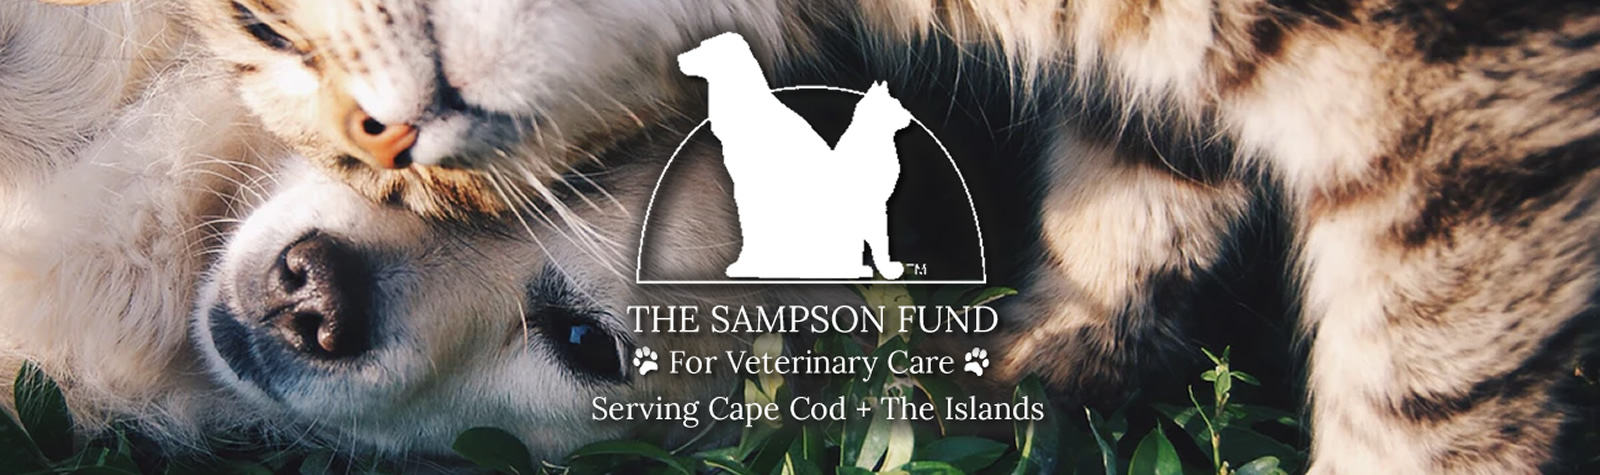 The Sampson Fund